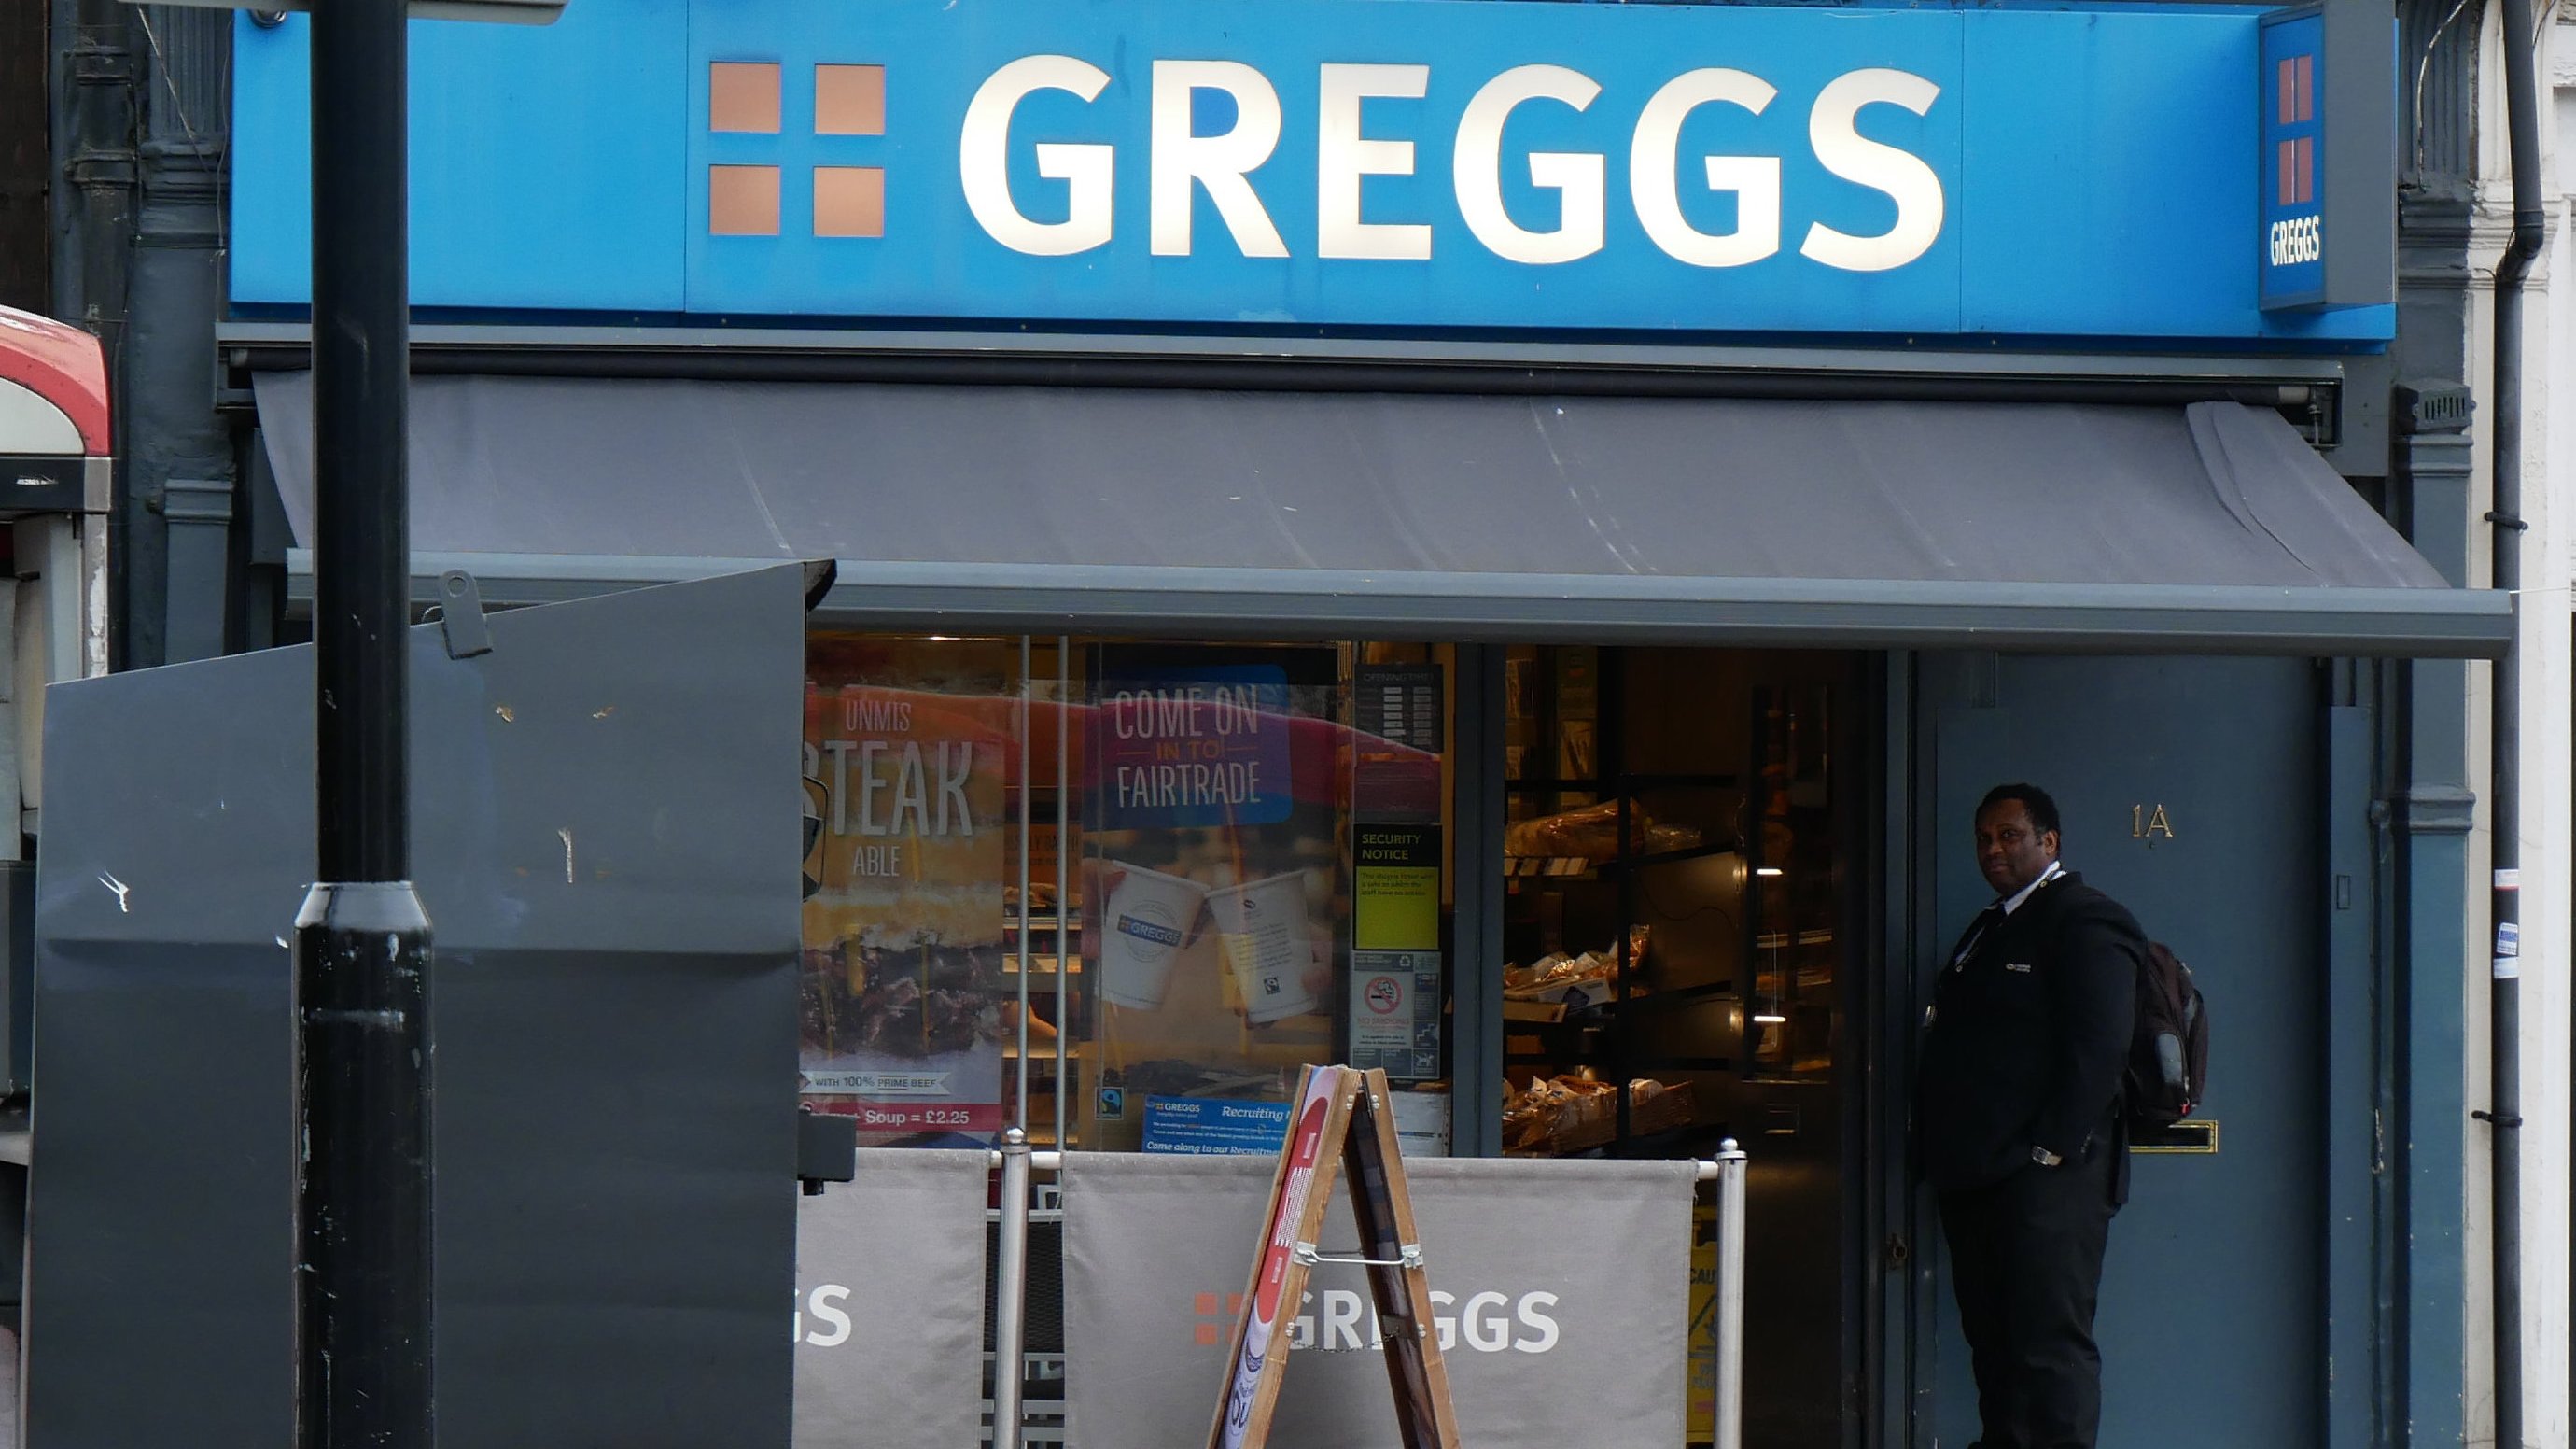 Greggs Has Started Employing Bouncers And People Can't Quite Believe It